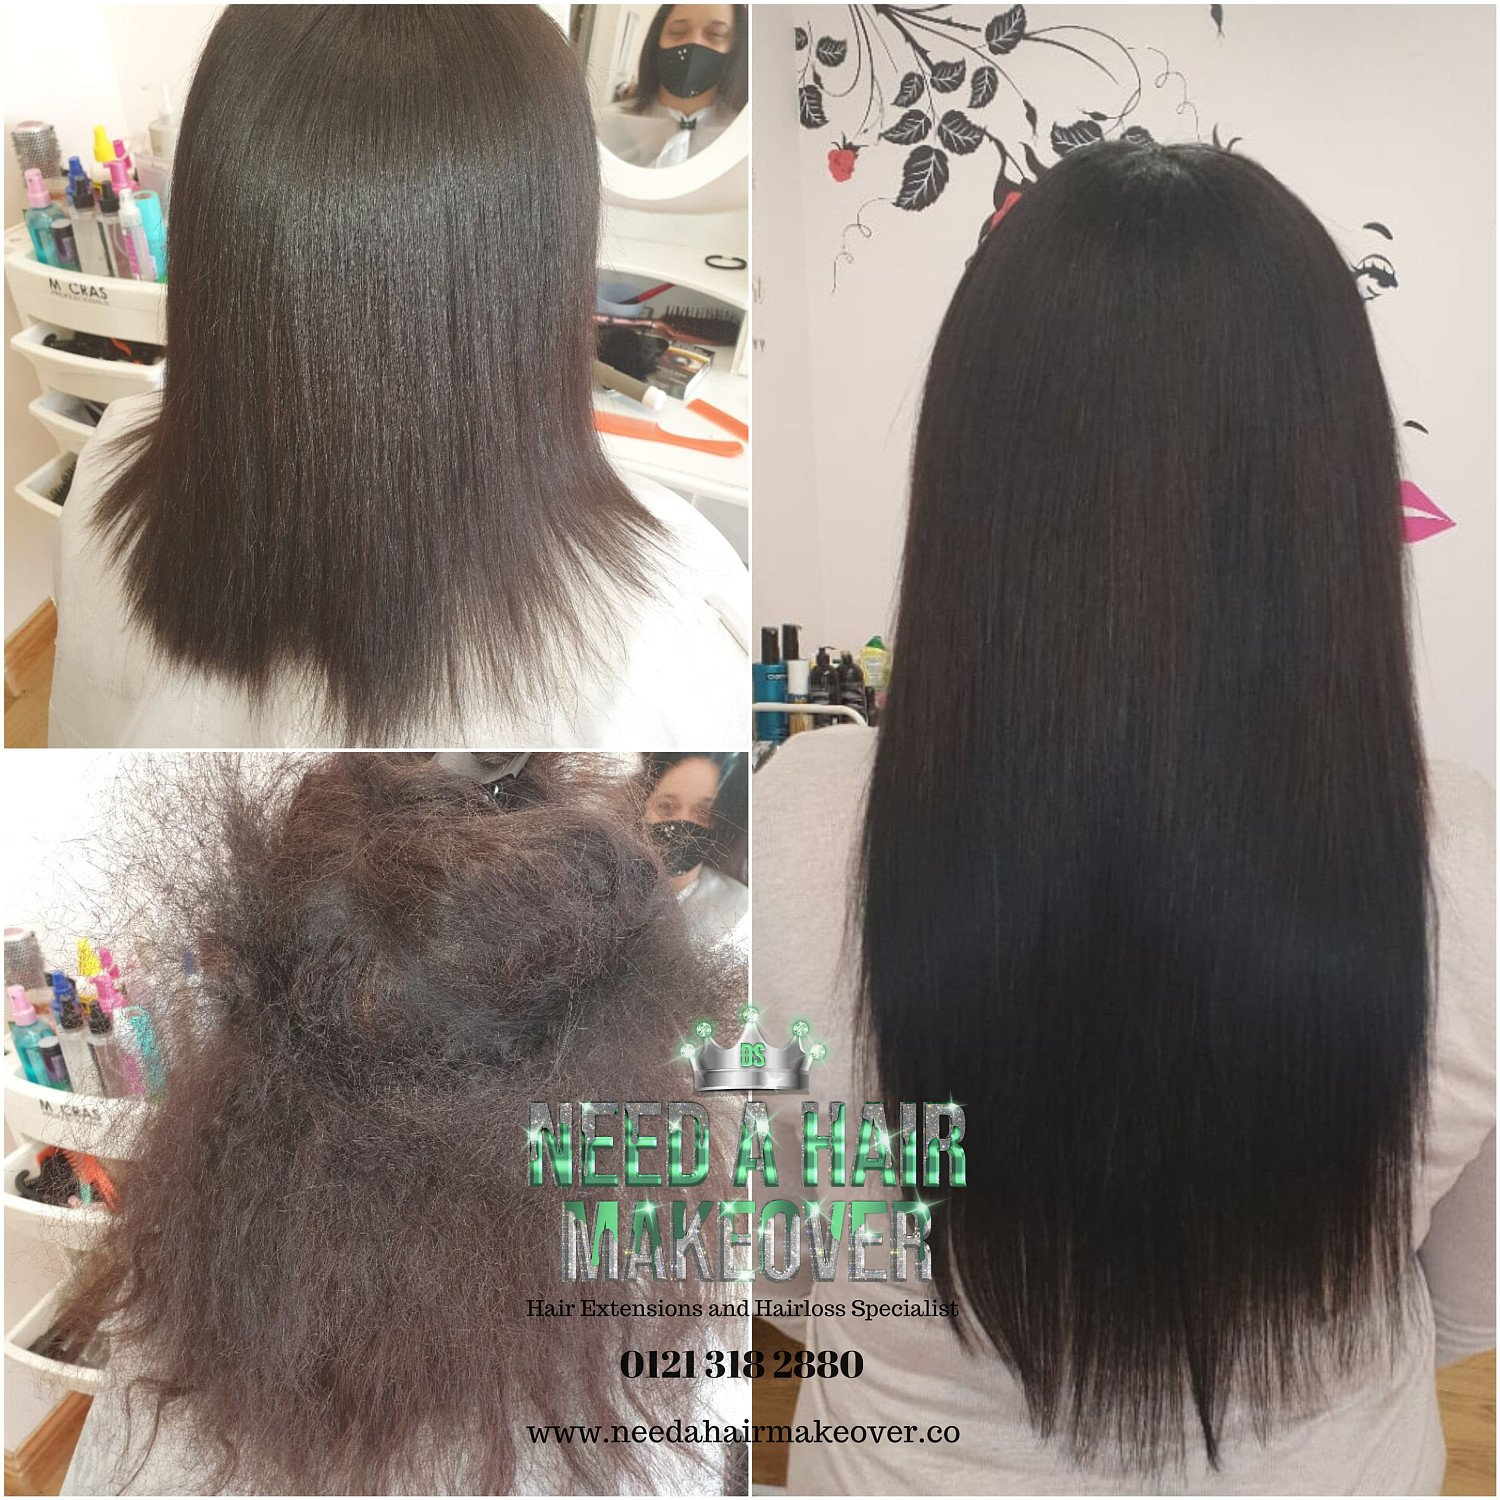 Win 1 Set of Clip in Hair Extensions